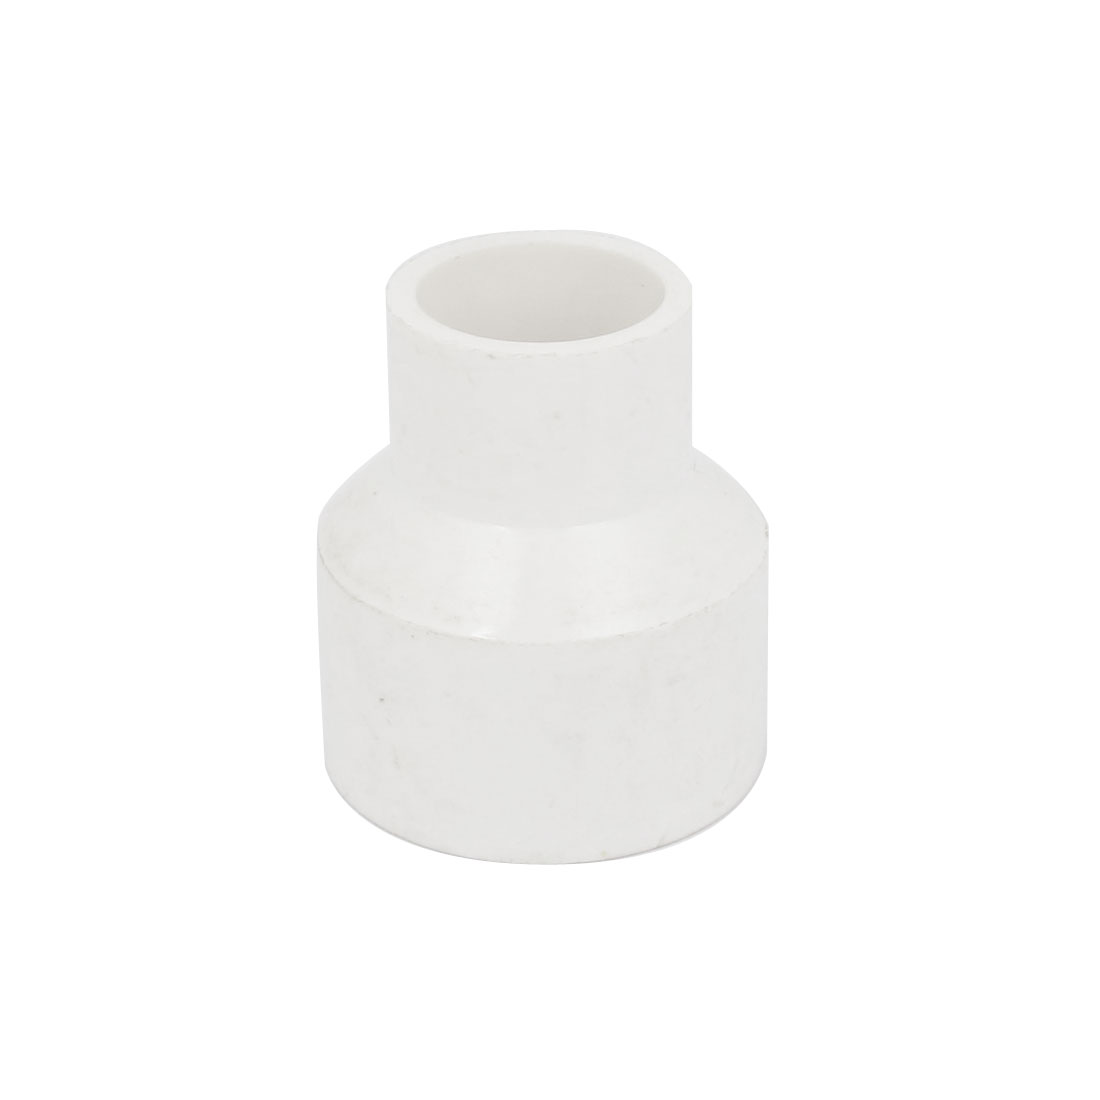 15mm x 25mm PVC Water Pipe Tube Adapter Connector Coupler White